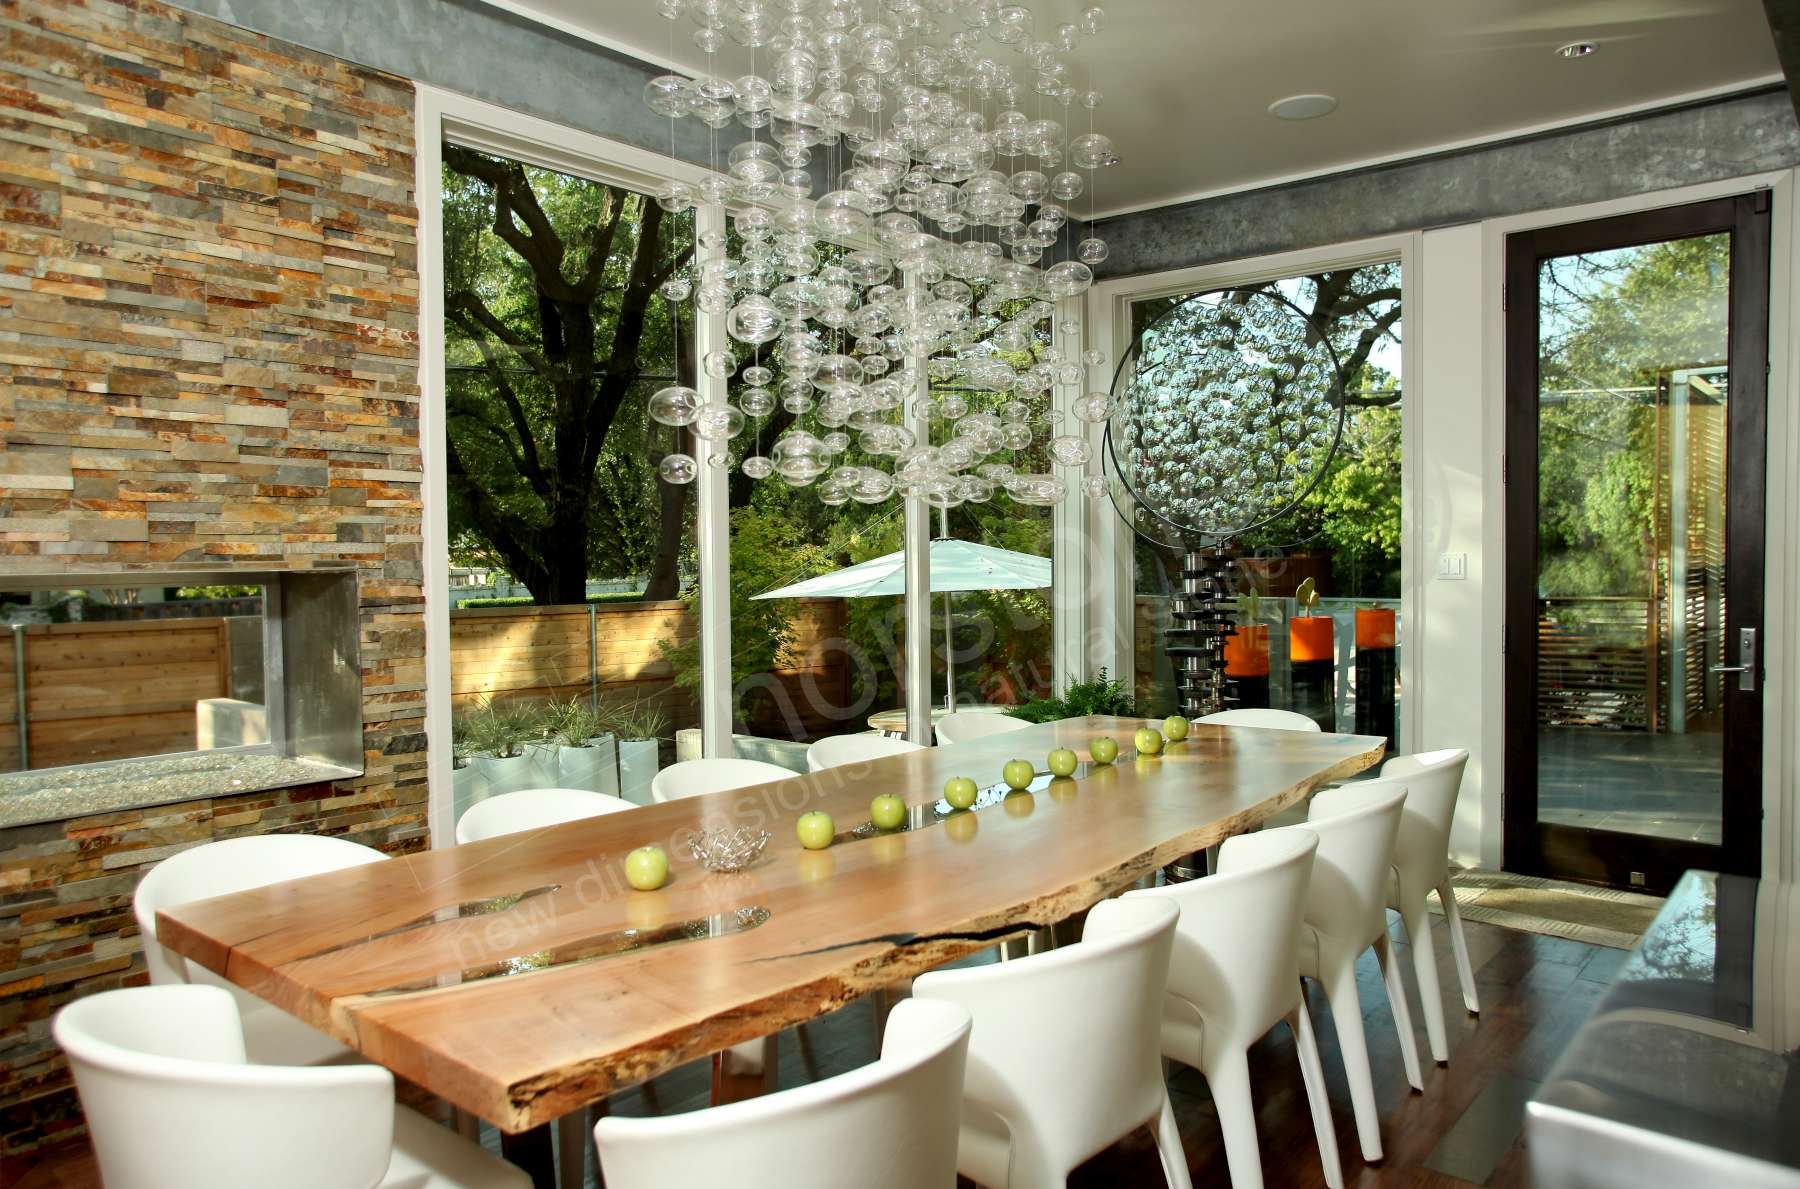 How furniture can be paired with natural stone veneer walls to enhance the design of a space